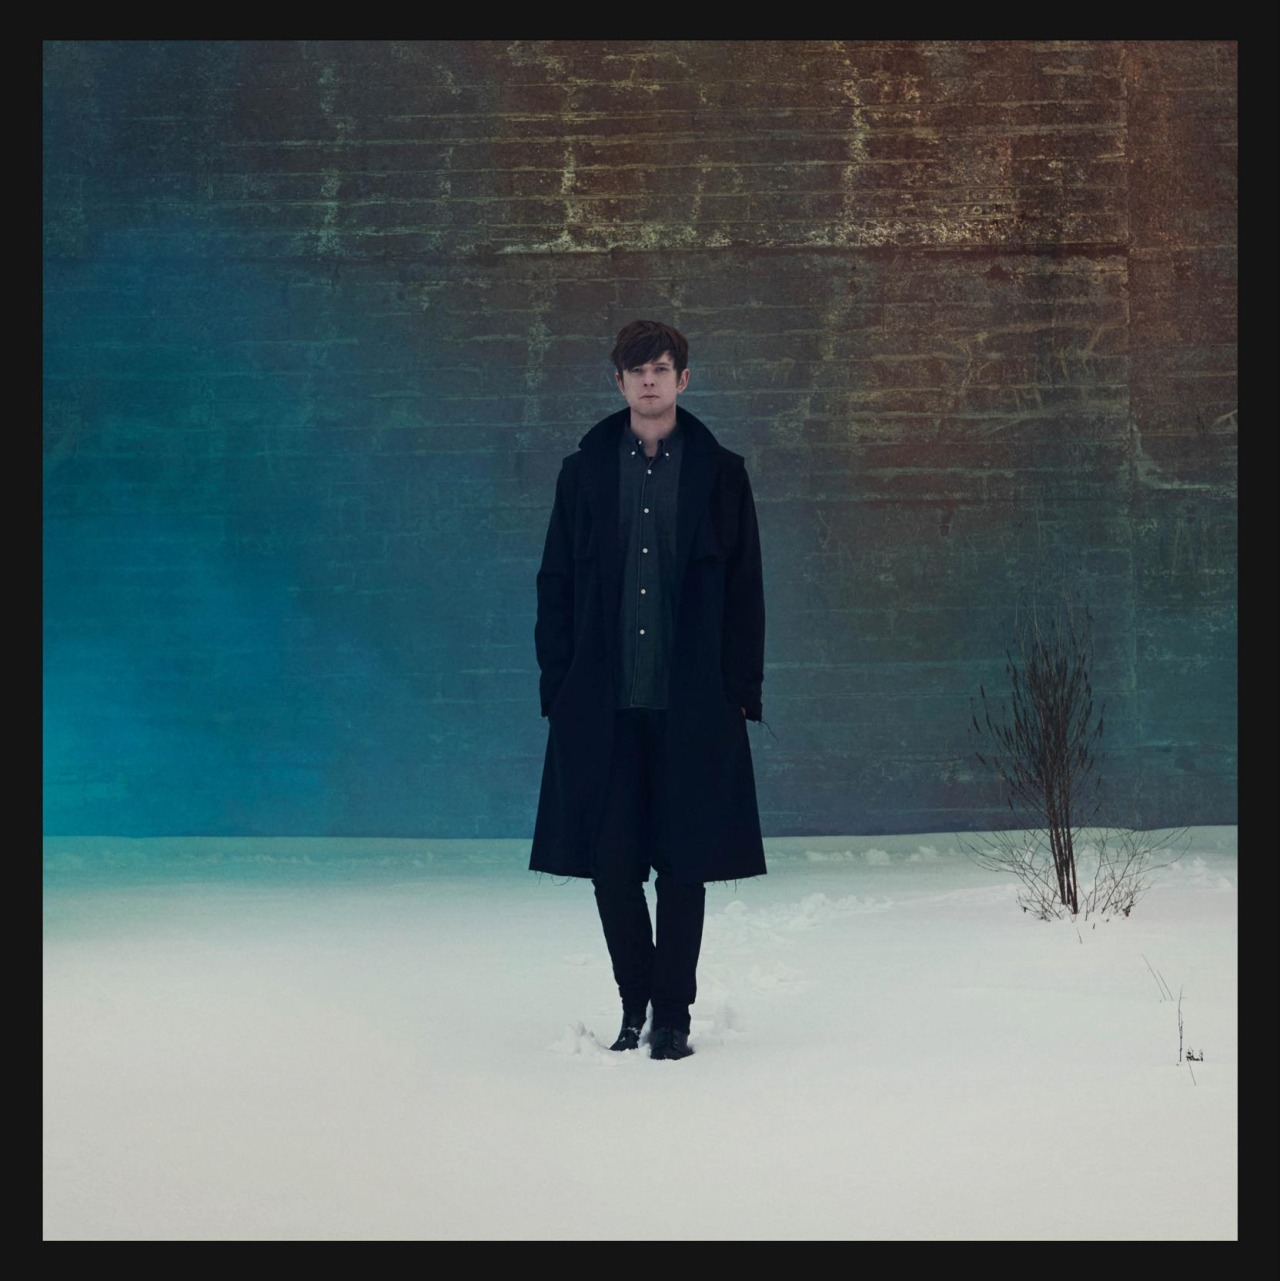 """This is the latest track from James Blake from his forthcoming new album. It's another superb piece of music, that is haunting and builds up to a nicecrescendoof synthy, pulsing sounds. I'm still playing his previous hit, the sub-wobbling """"Limit To Your Love"""". (For deep house enthusiasts there is a great Finn Pilly Edit which isfree to download)"""